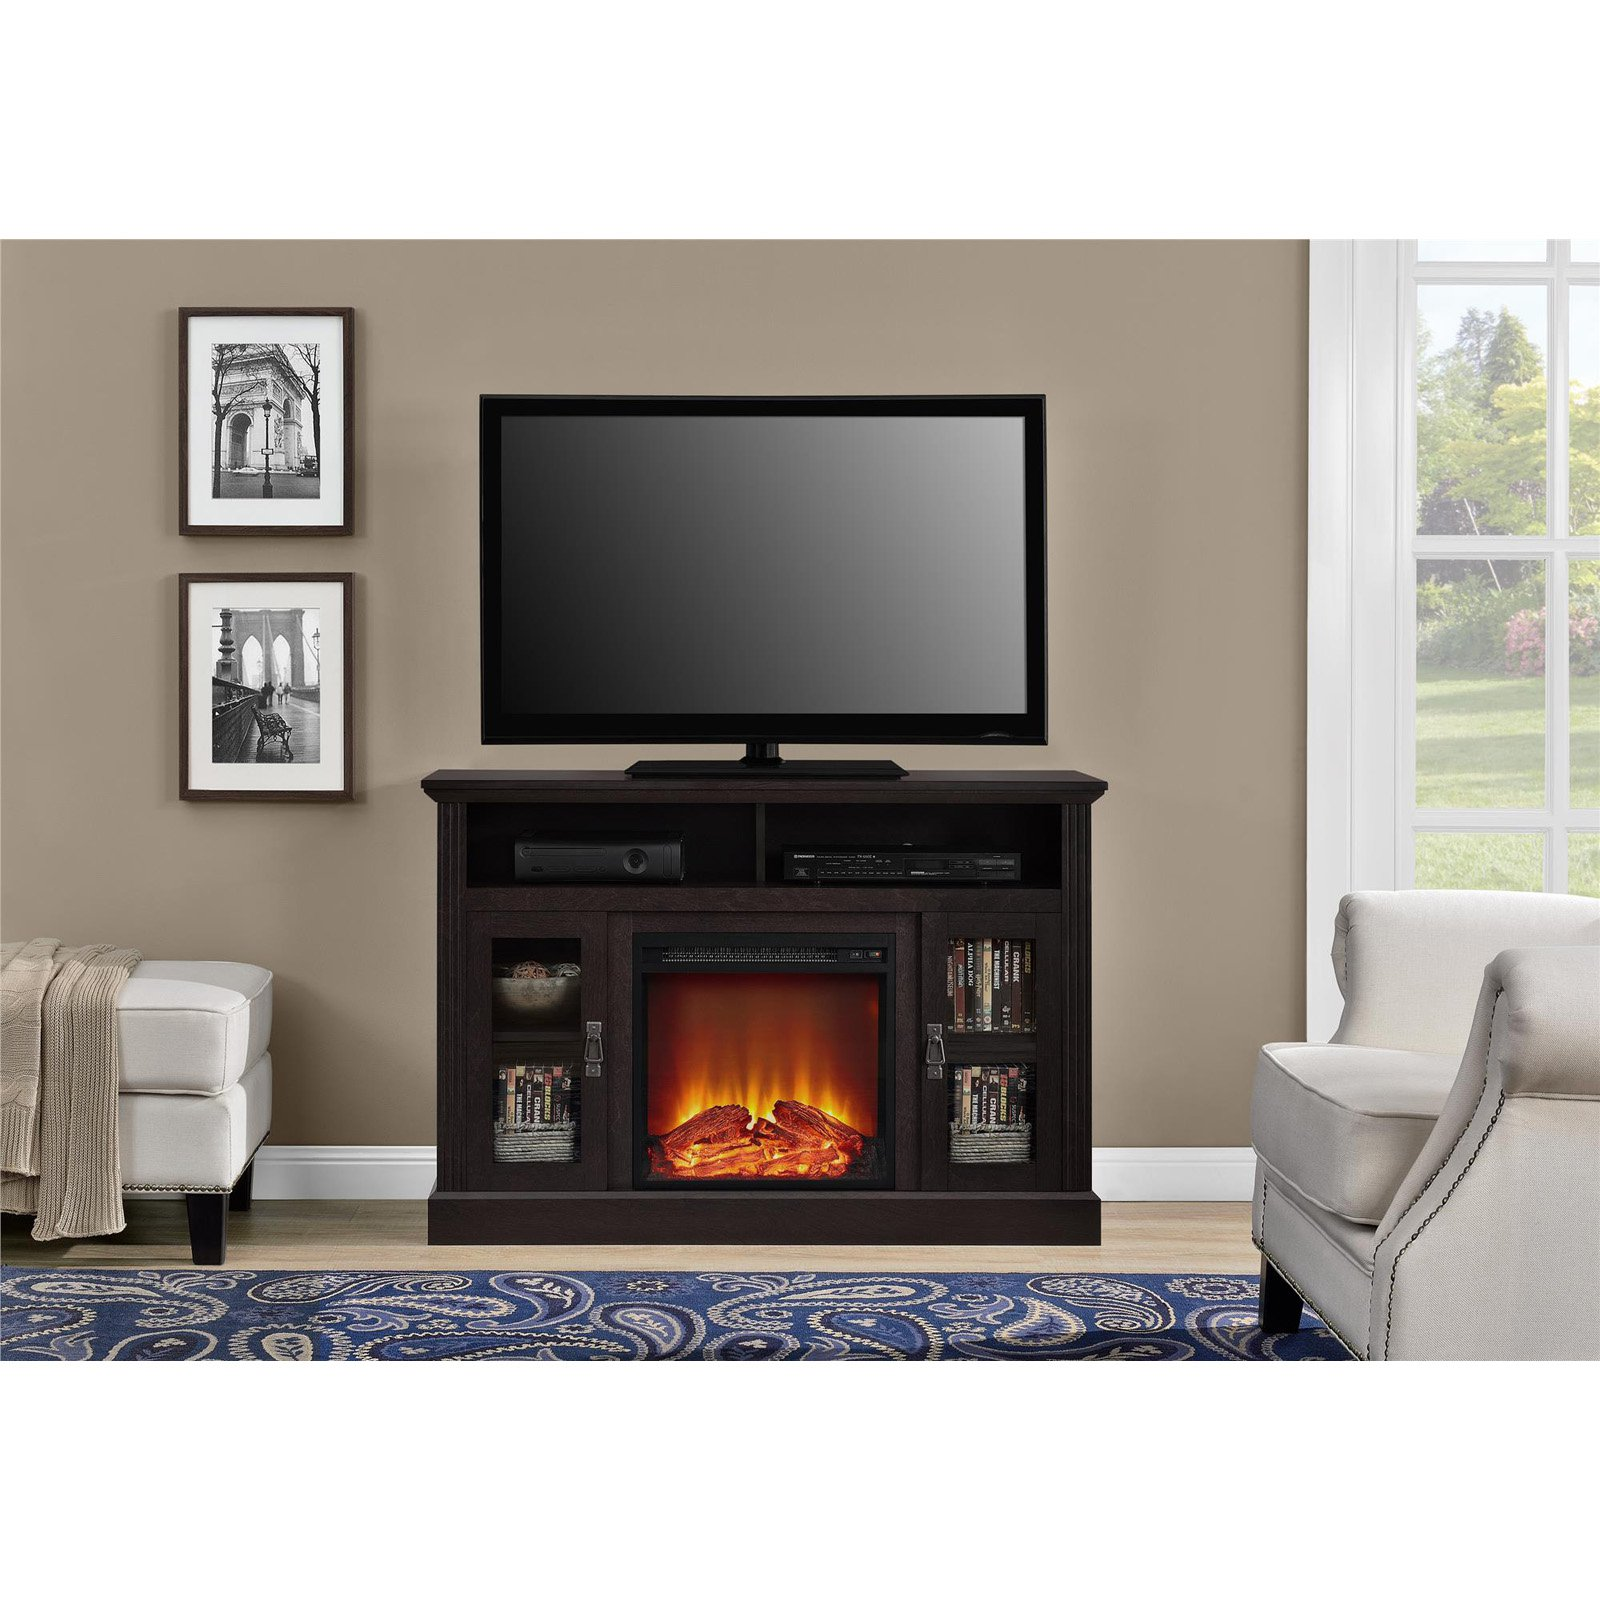 "Ameriwood Home Chicago Electric Fireplace TV Console for TVs up to a 50"" Multiple Colors"